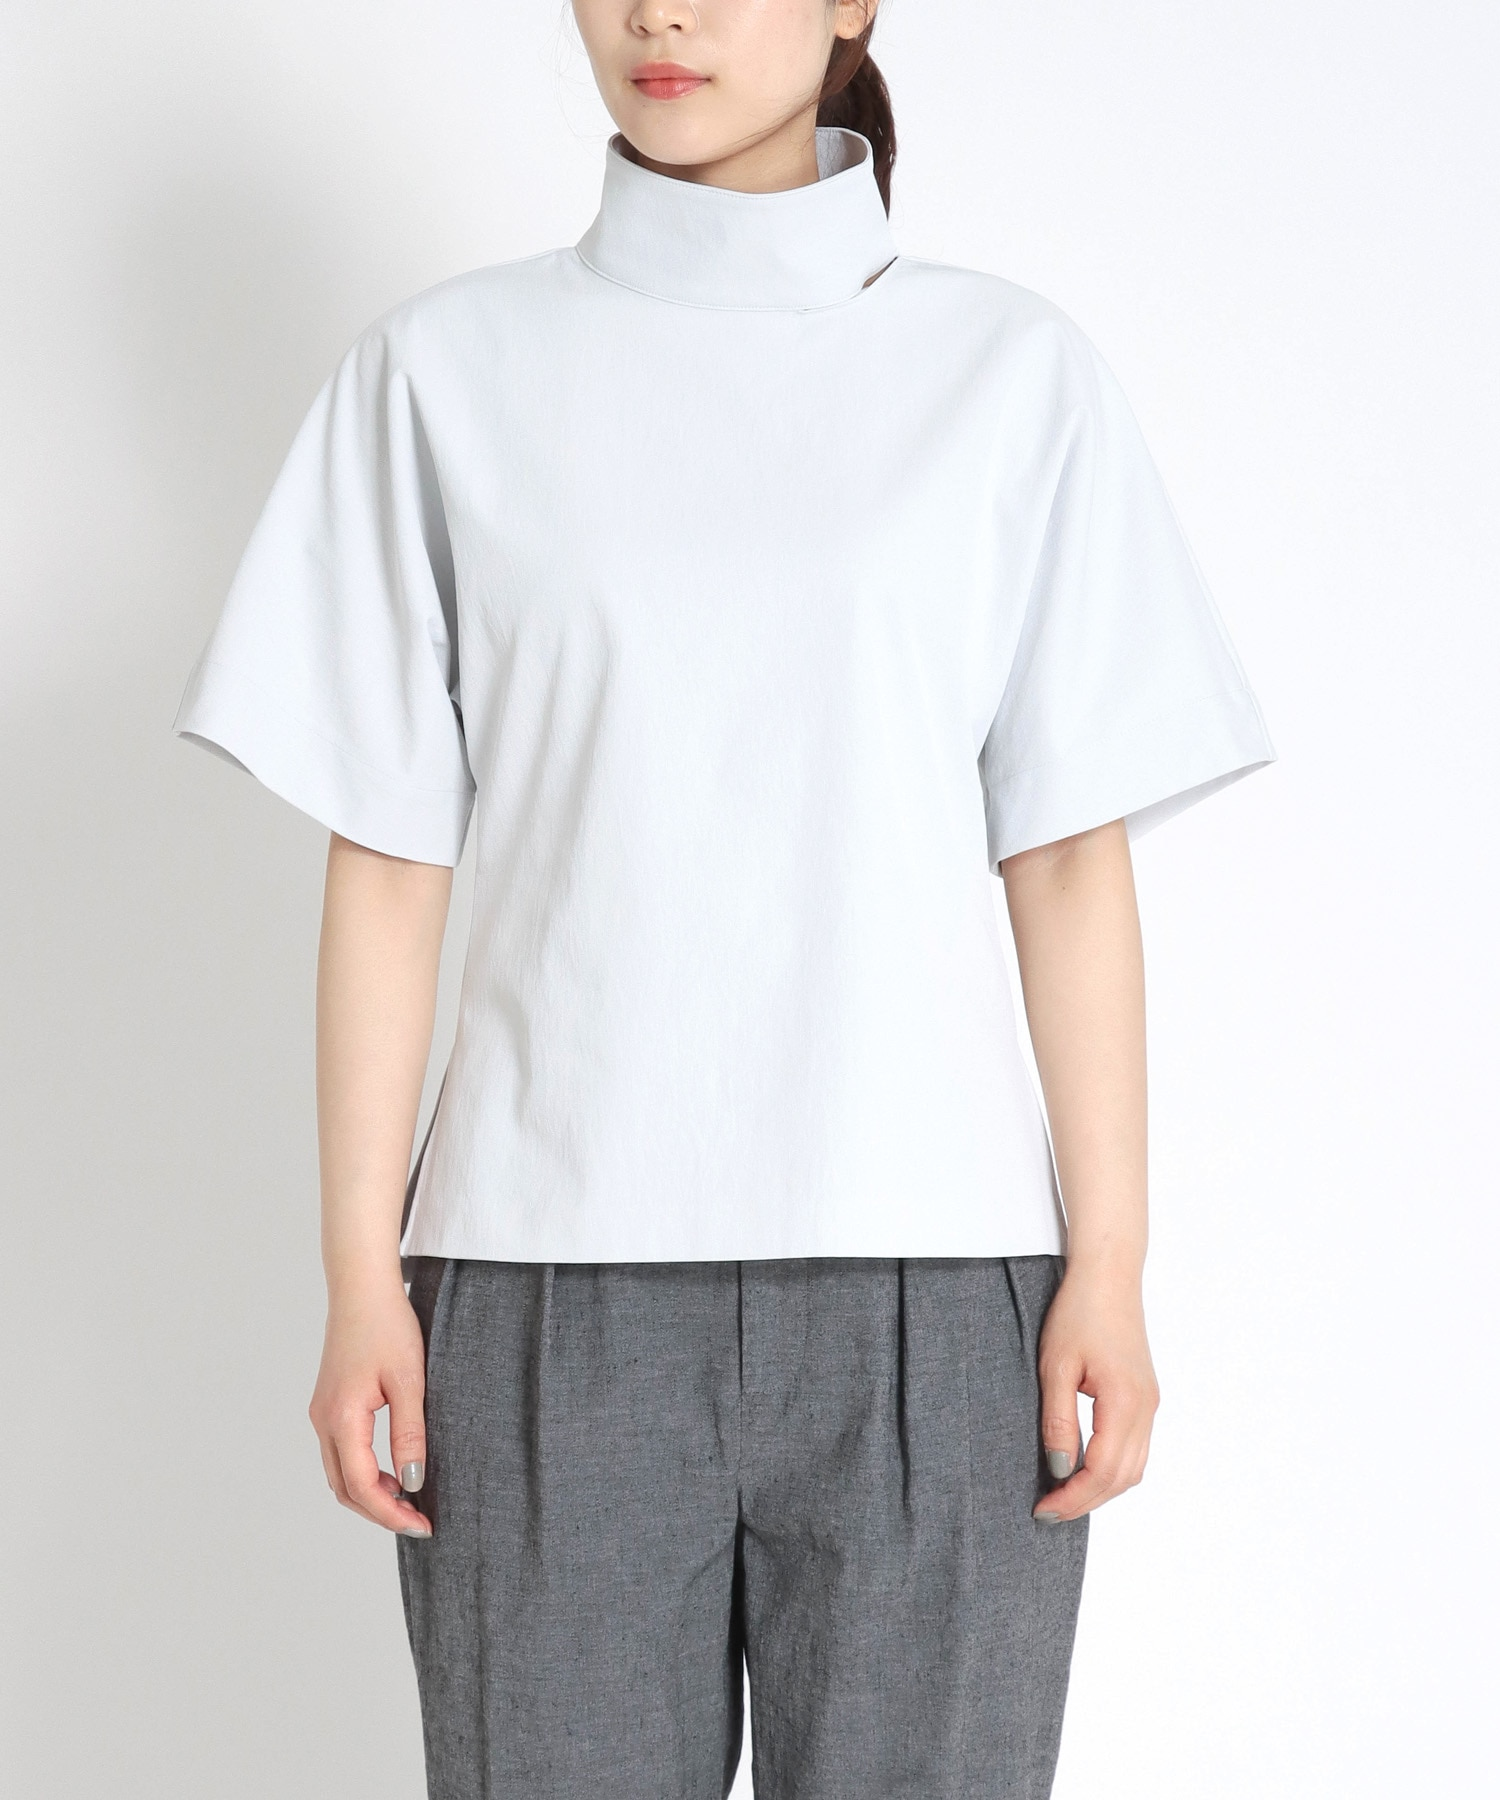 <B7>high neck short sleeve tops